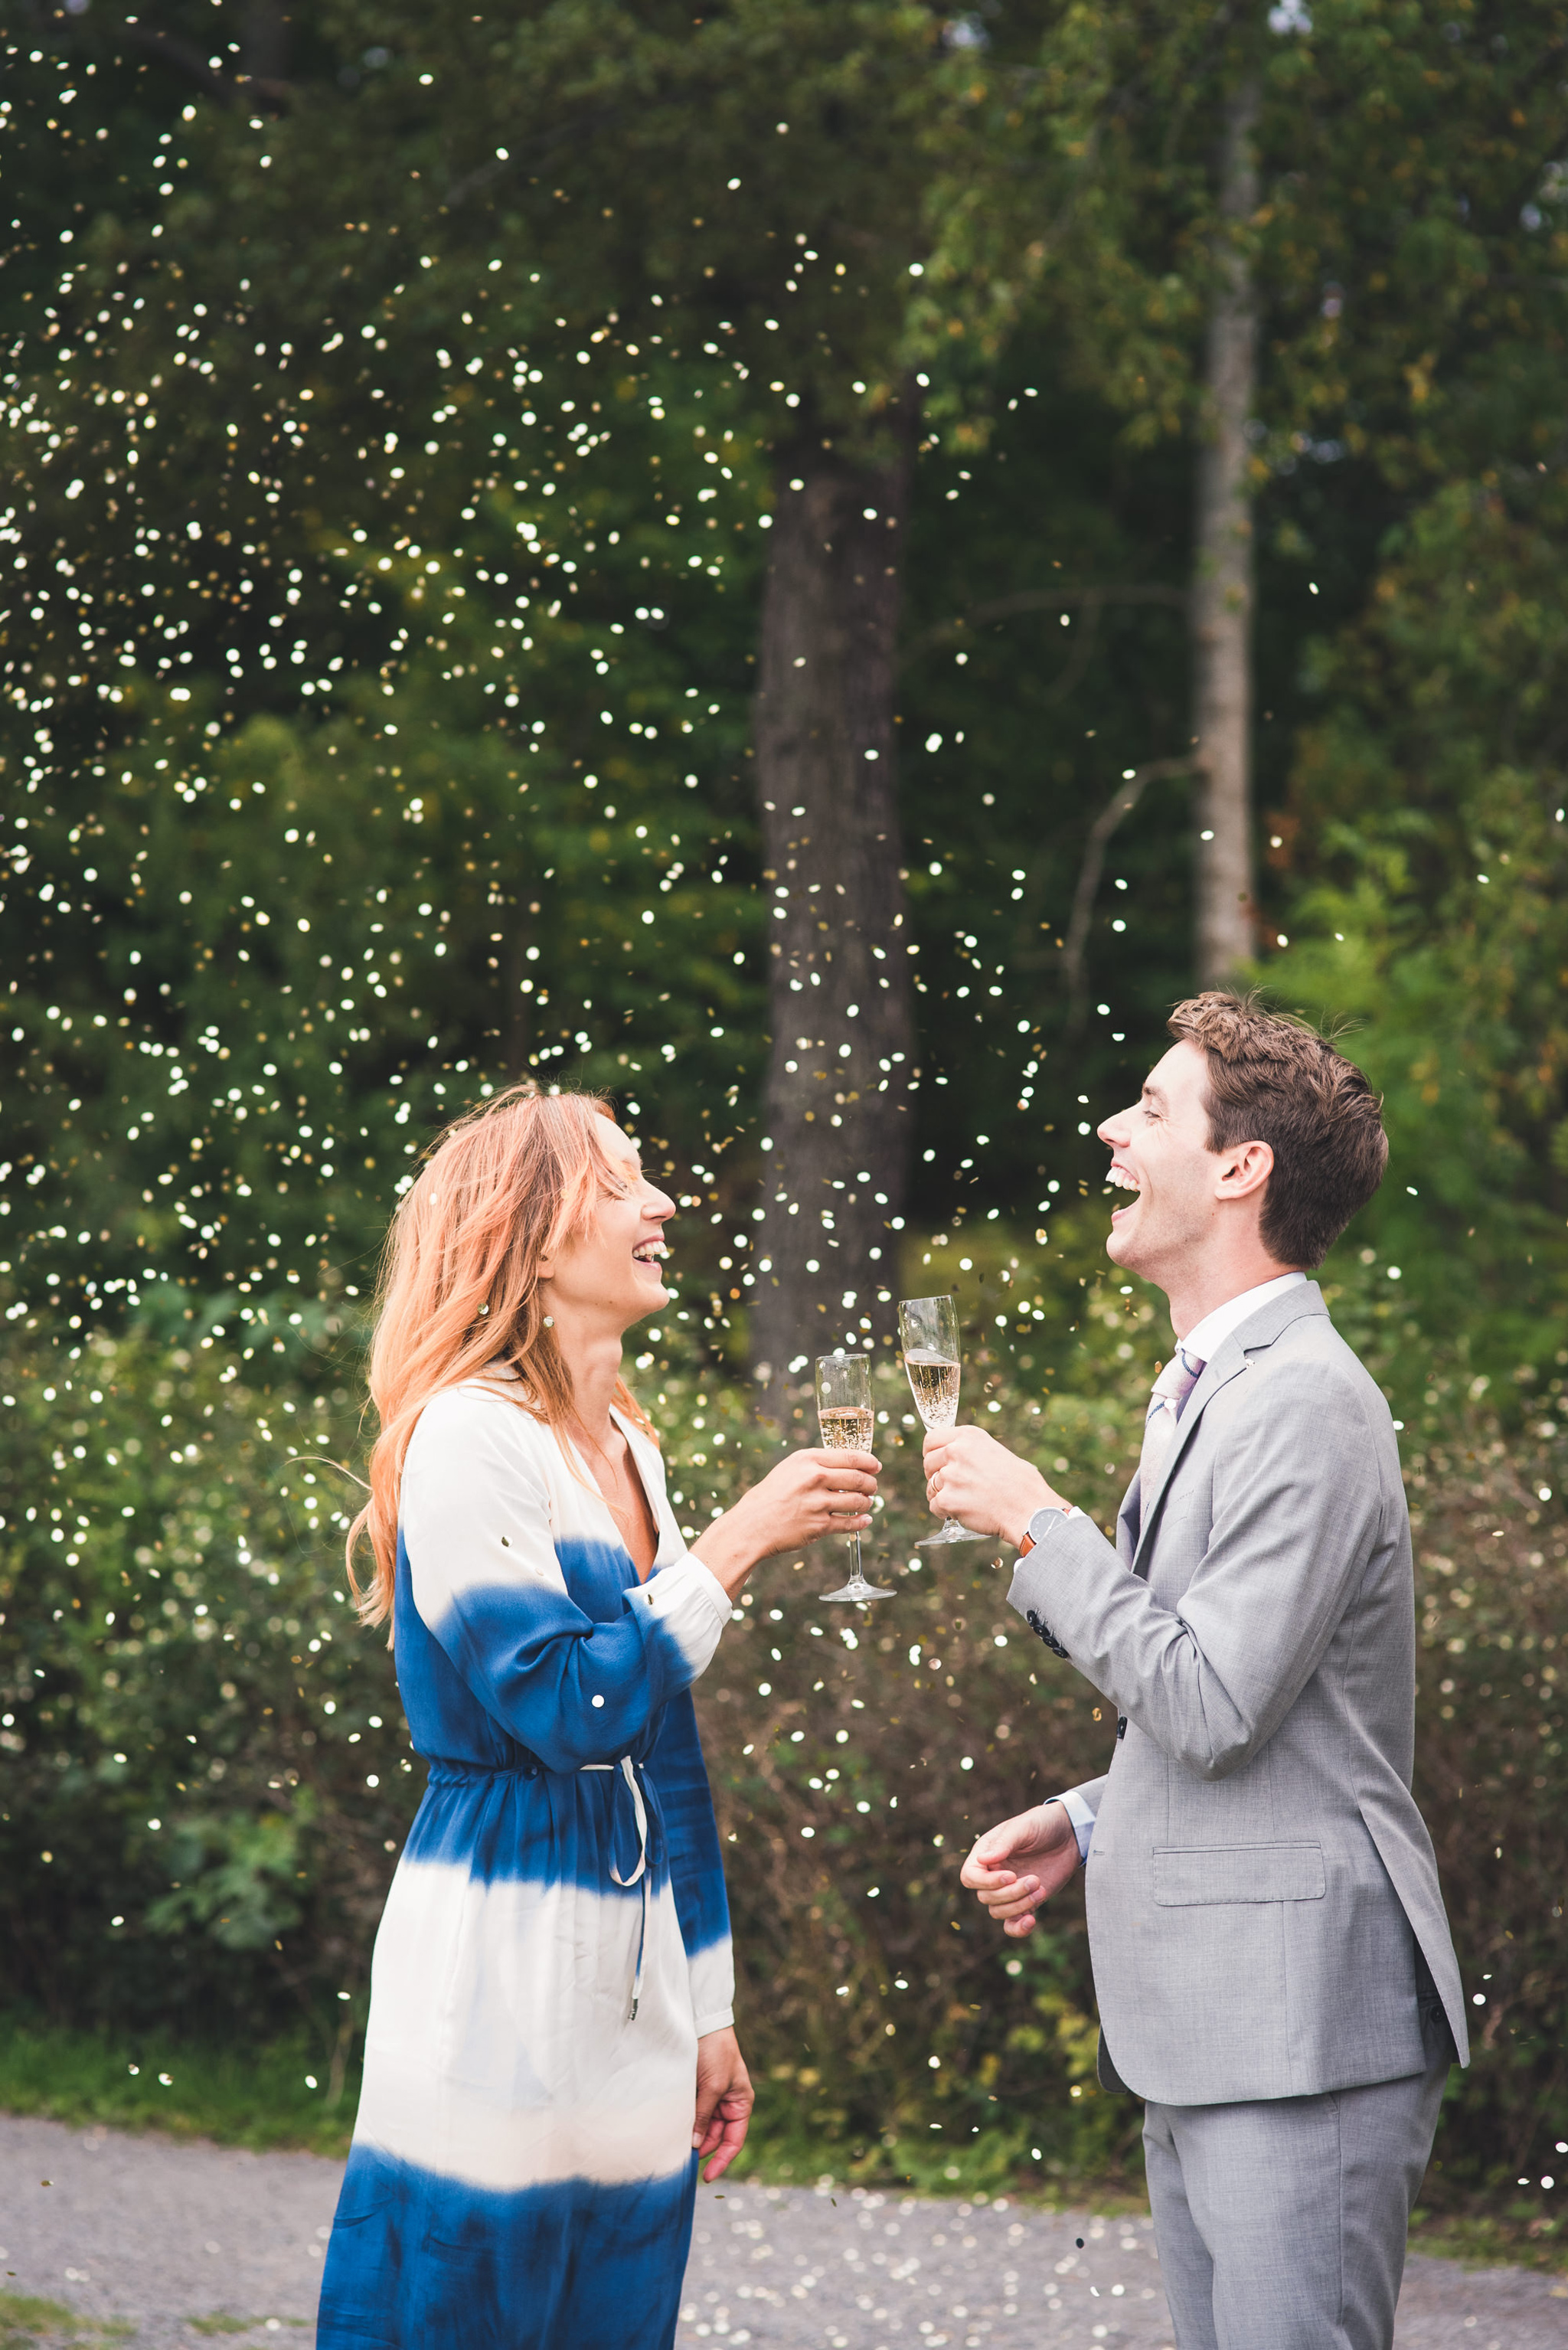 bride and groom making a toast in a cloud of glitter confetti